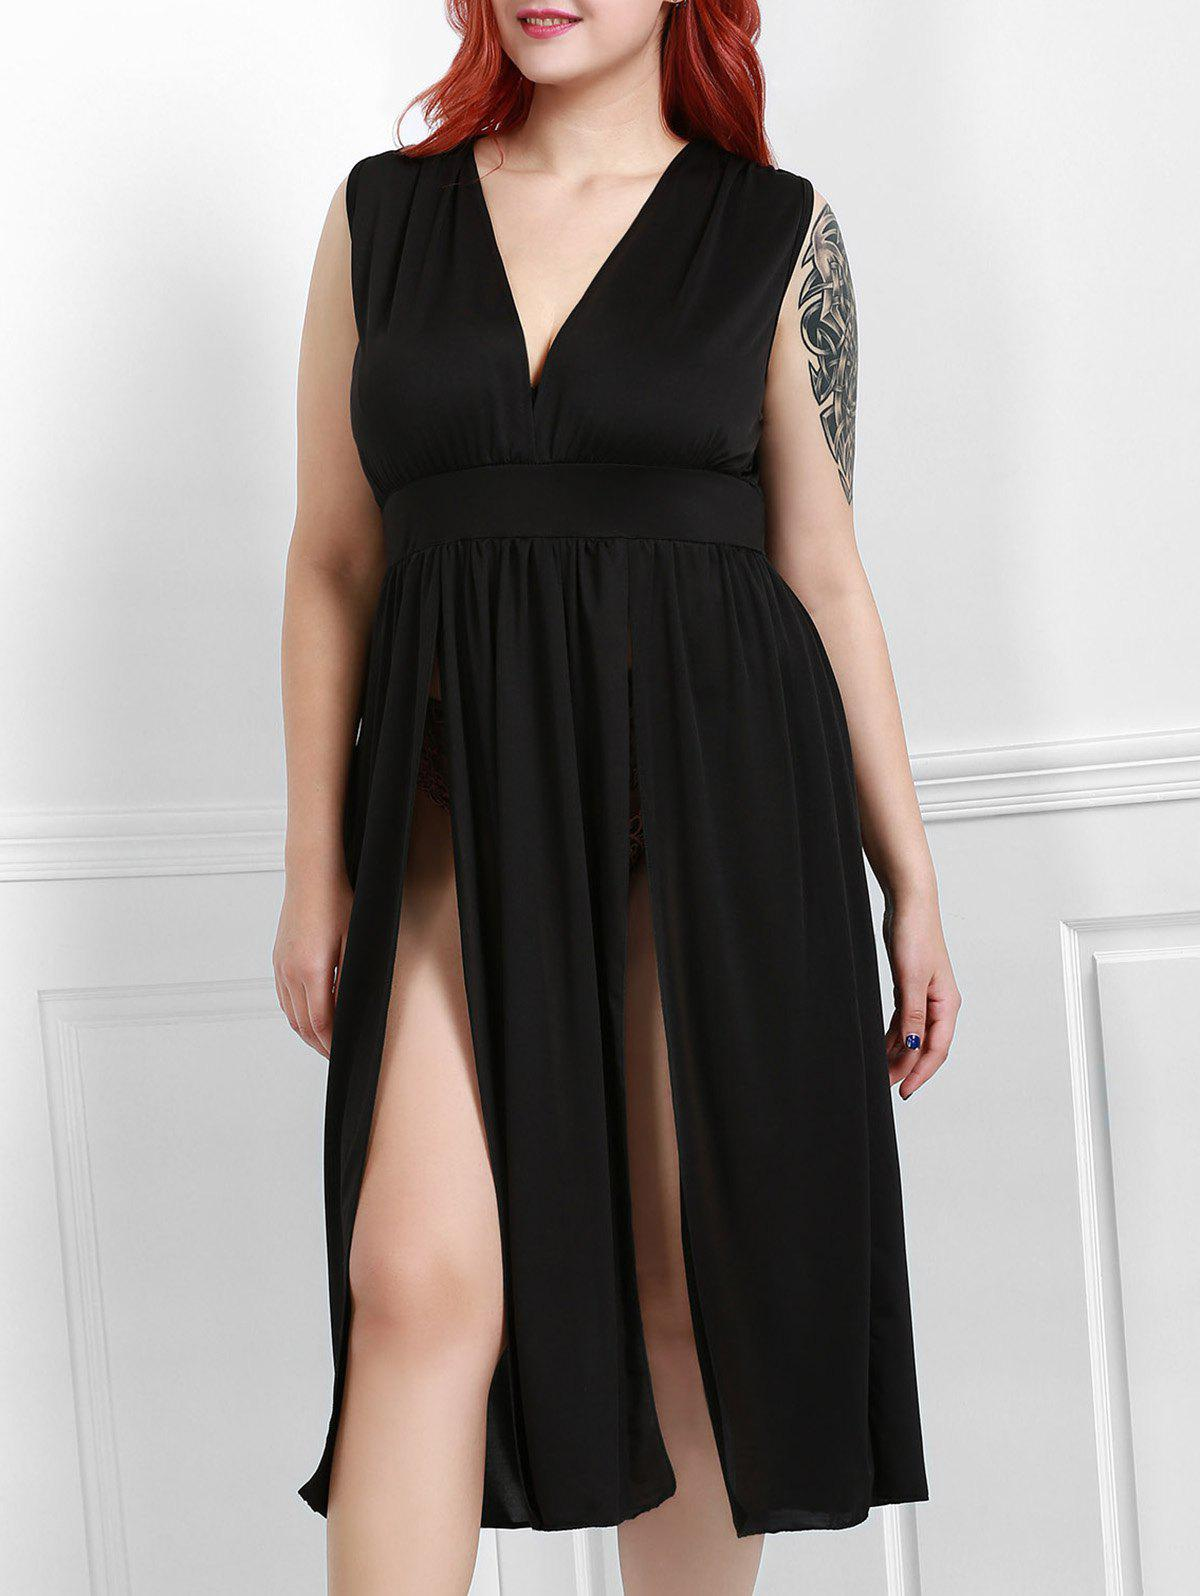 Sexy Plunging Neck Sleeveless Solid Color Plus Size High Slit Women's Dress - BLACK XL